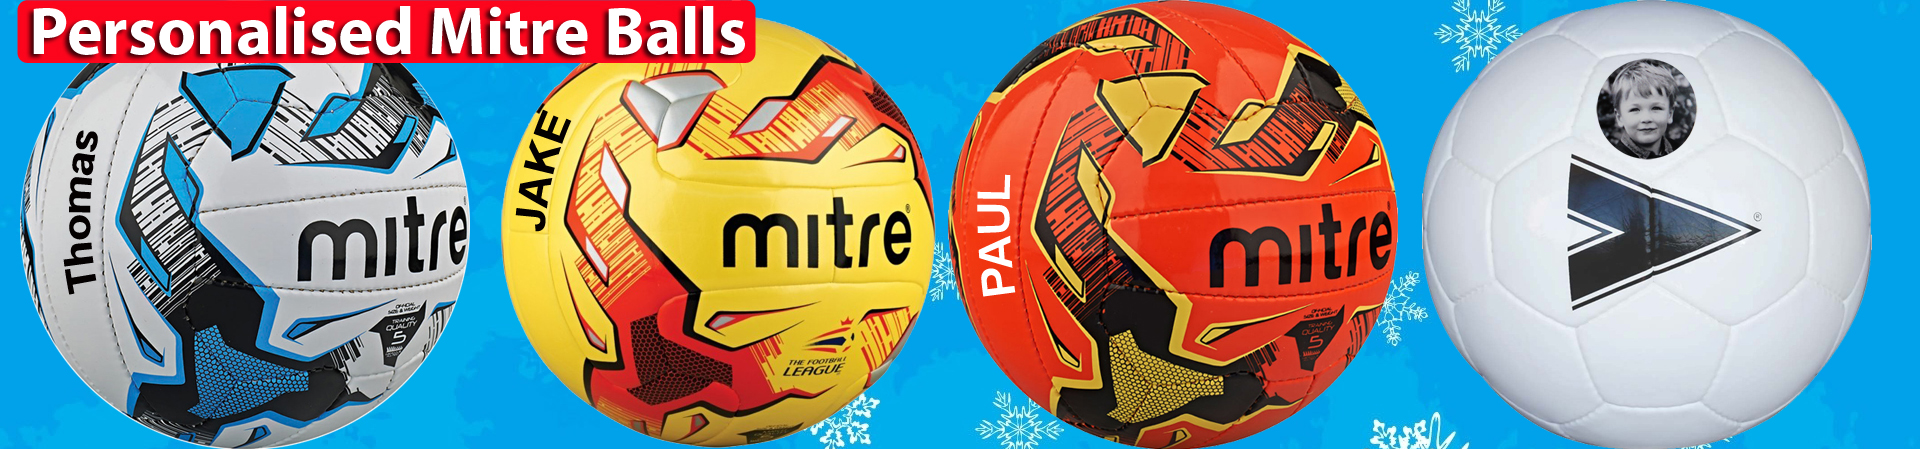 Personalized Mitre balls